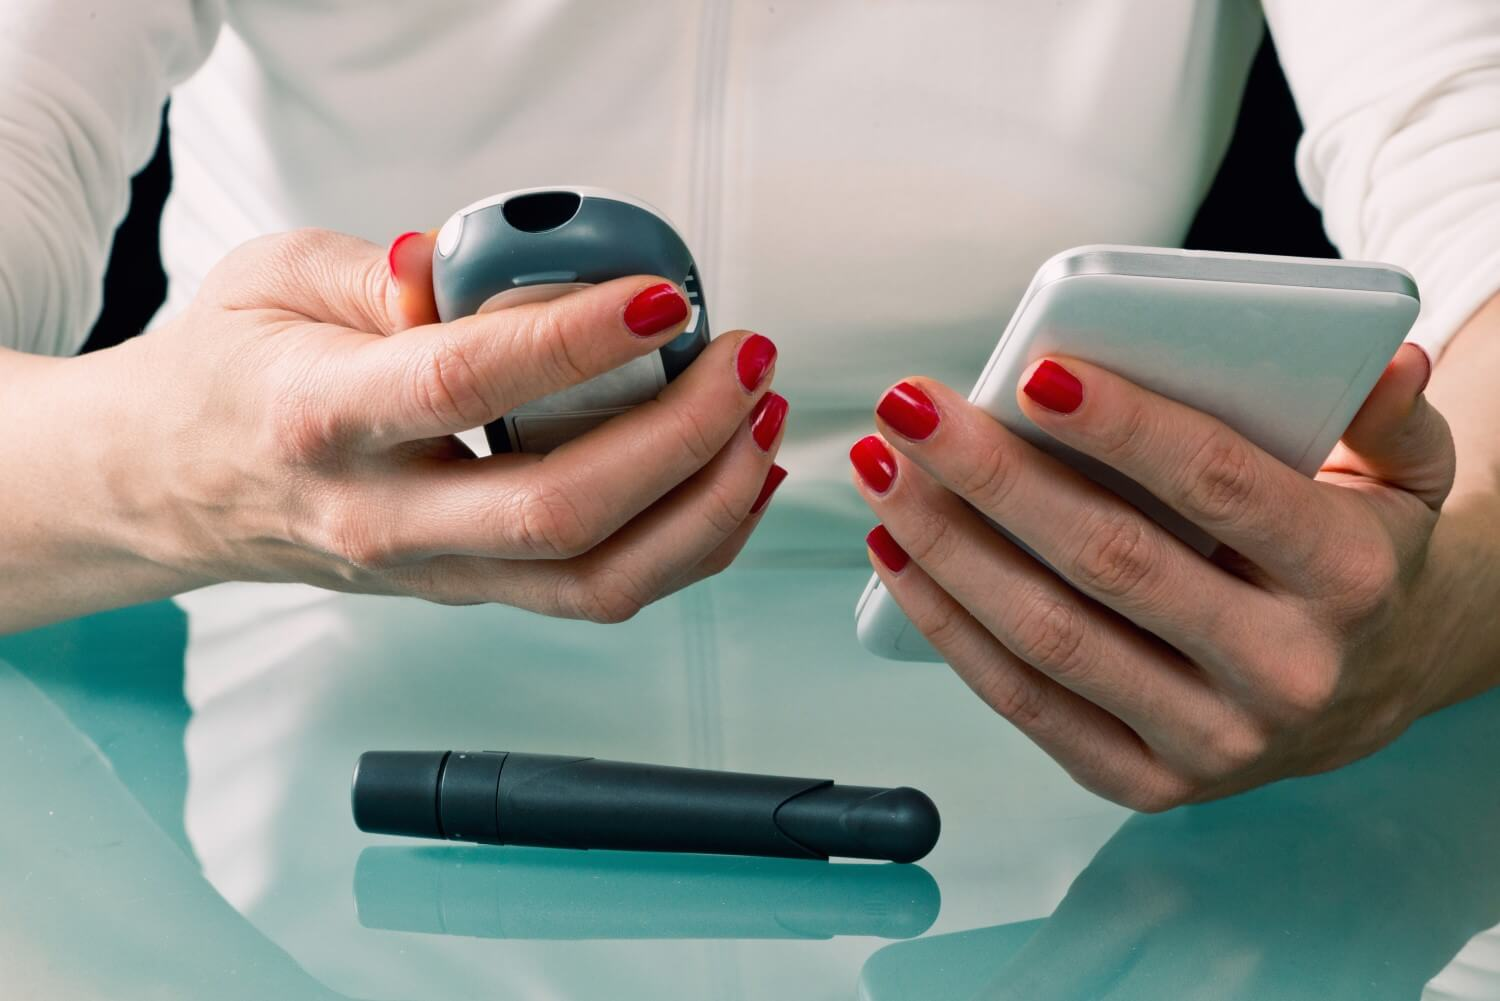 Woman using phone and blood glucose meter to manage diabetes treatment